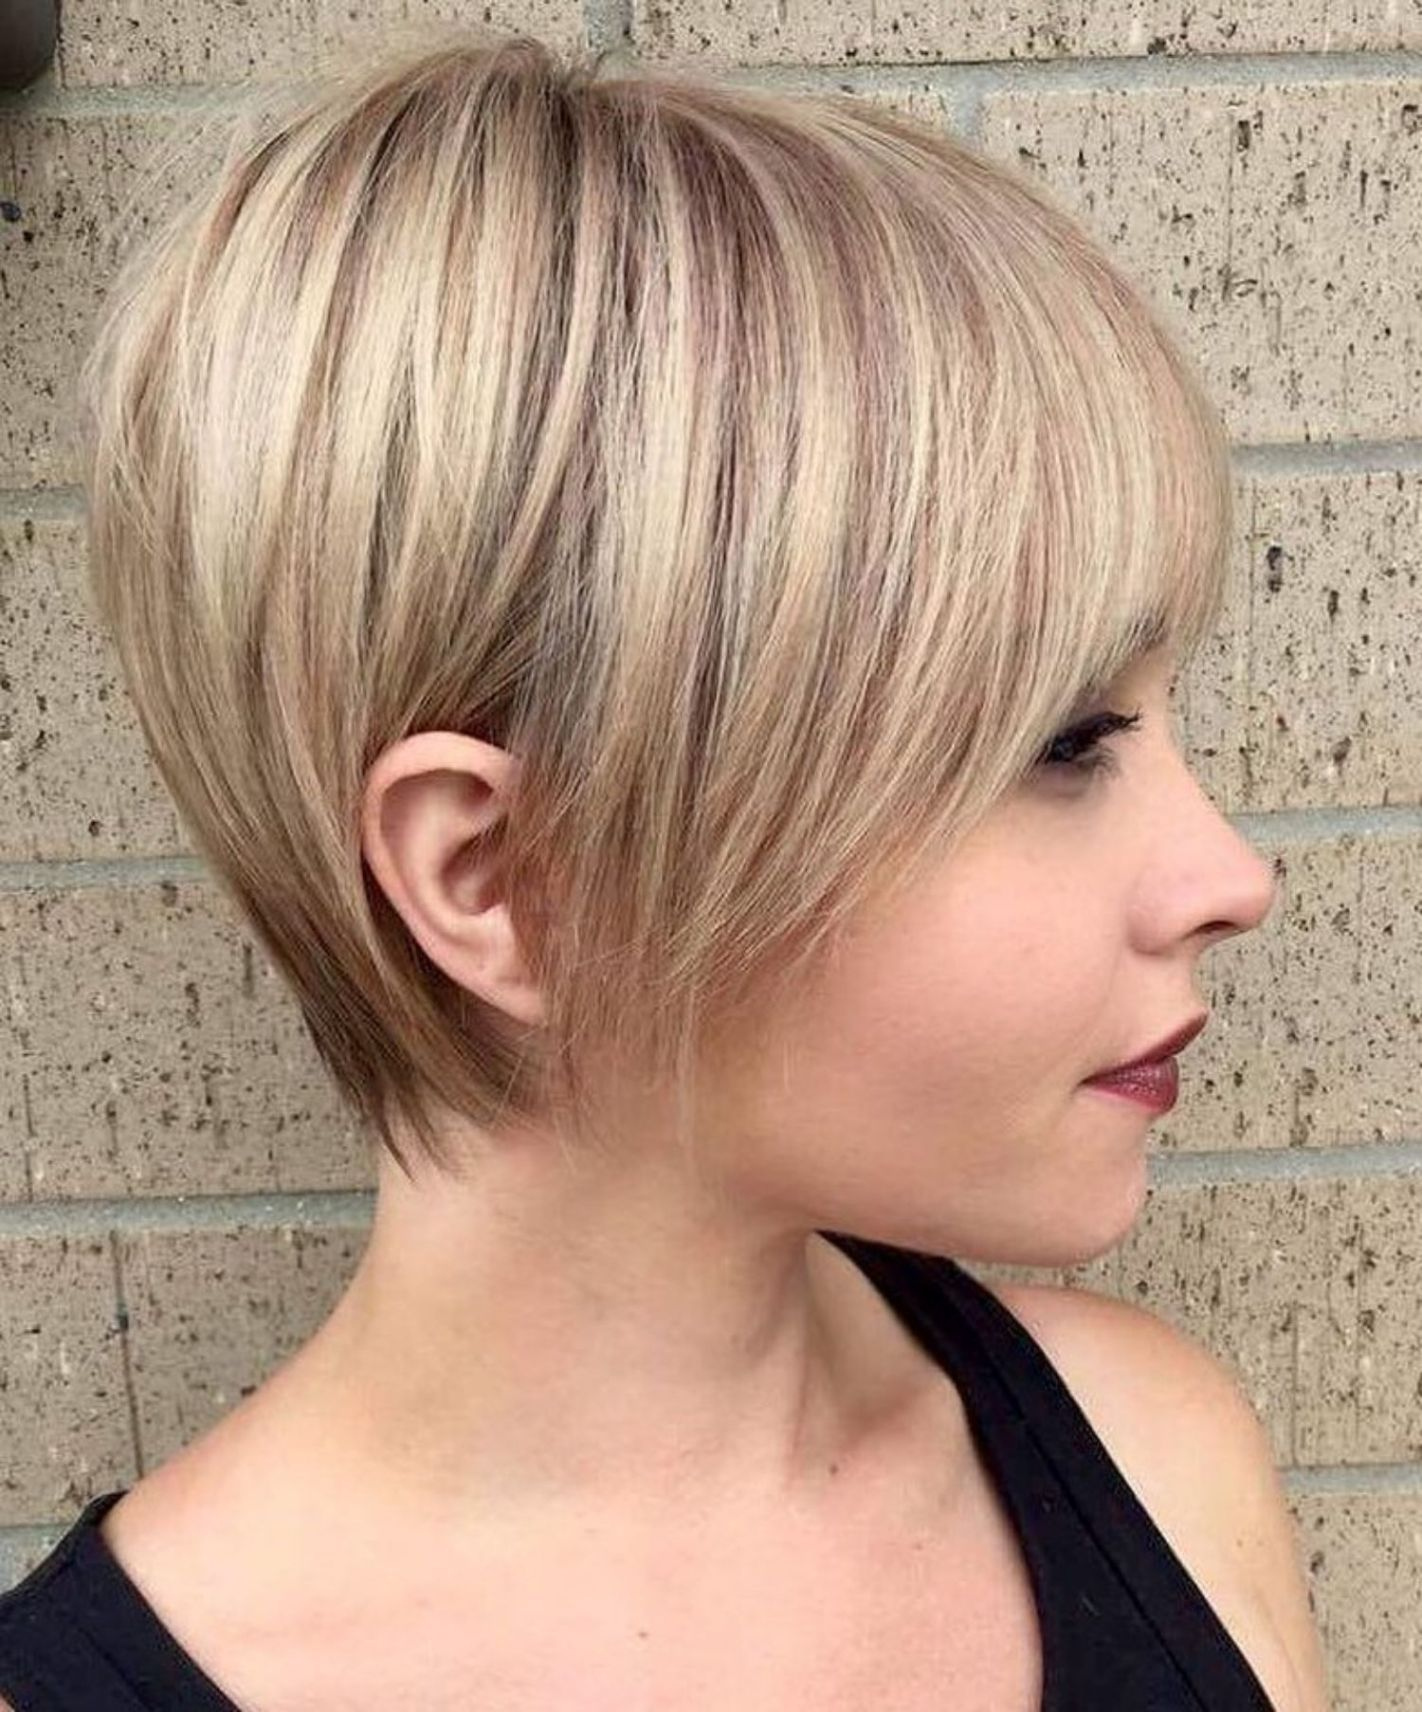 50 Super Cute Looks With Short Hairstyles For Round Faces Longer Pixie Haircut Haircuts For Fine Hair Bob Hairstyles For Fine Hair